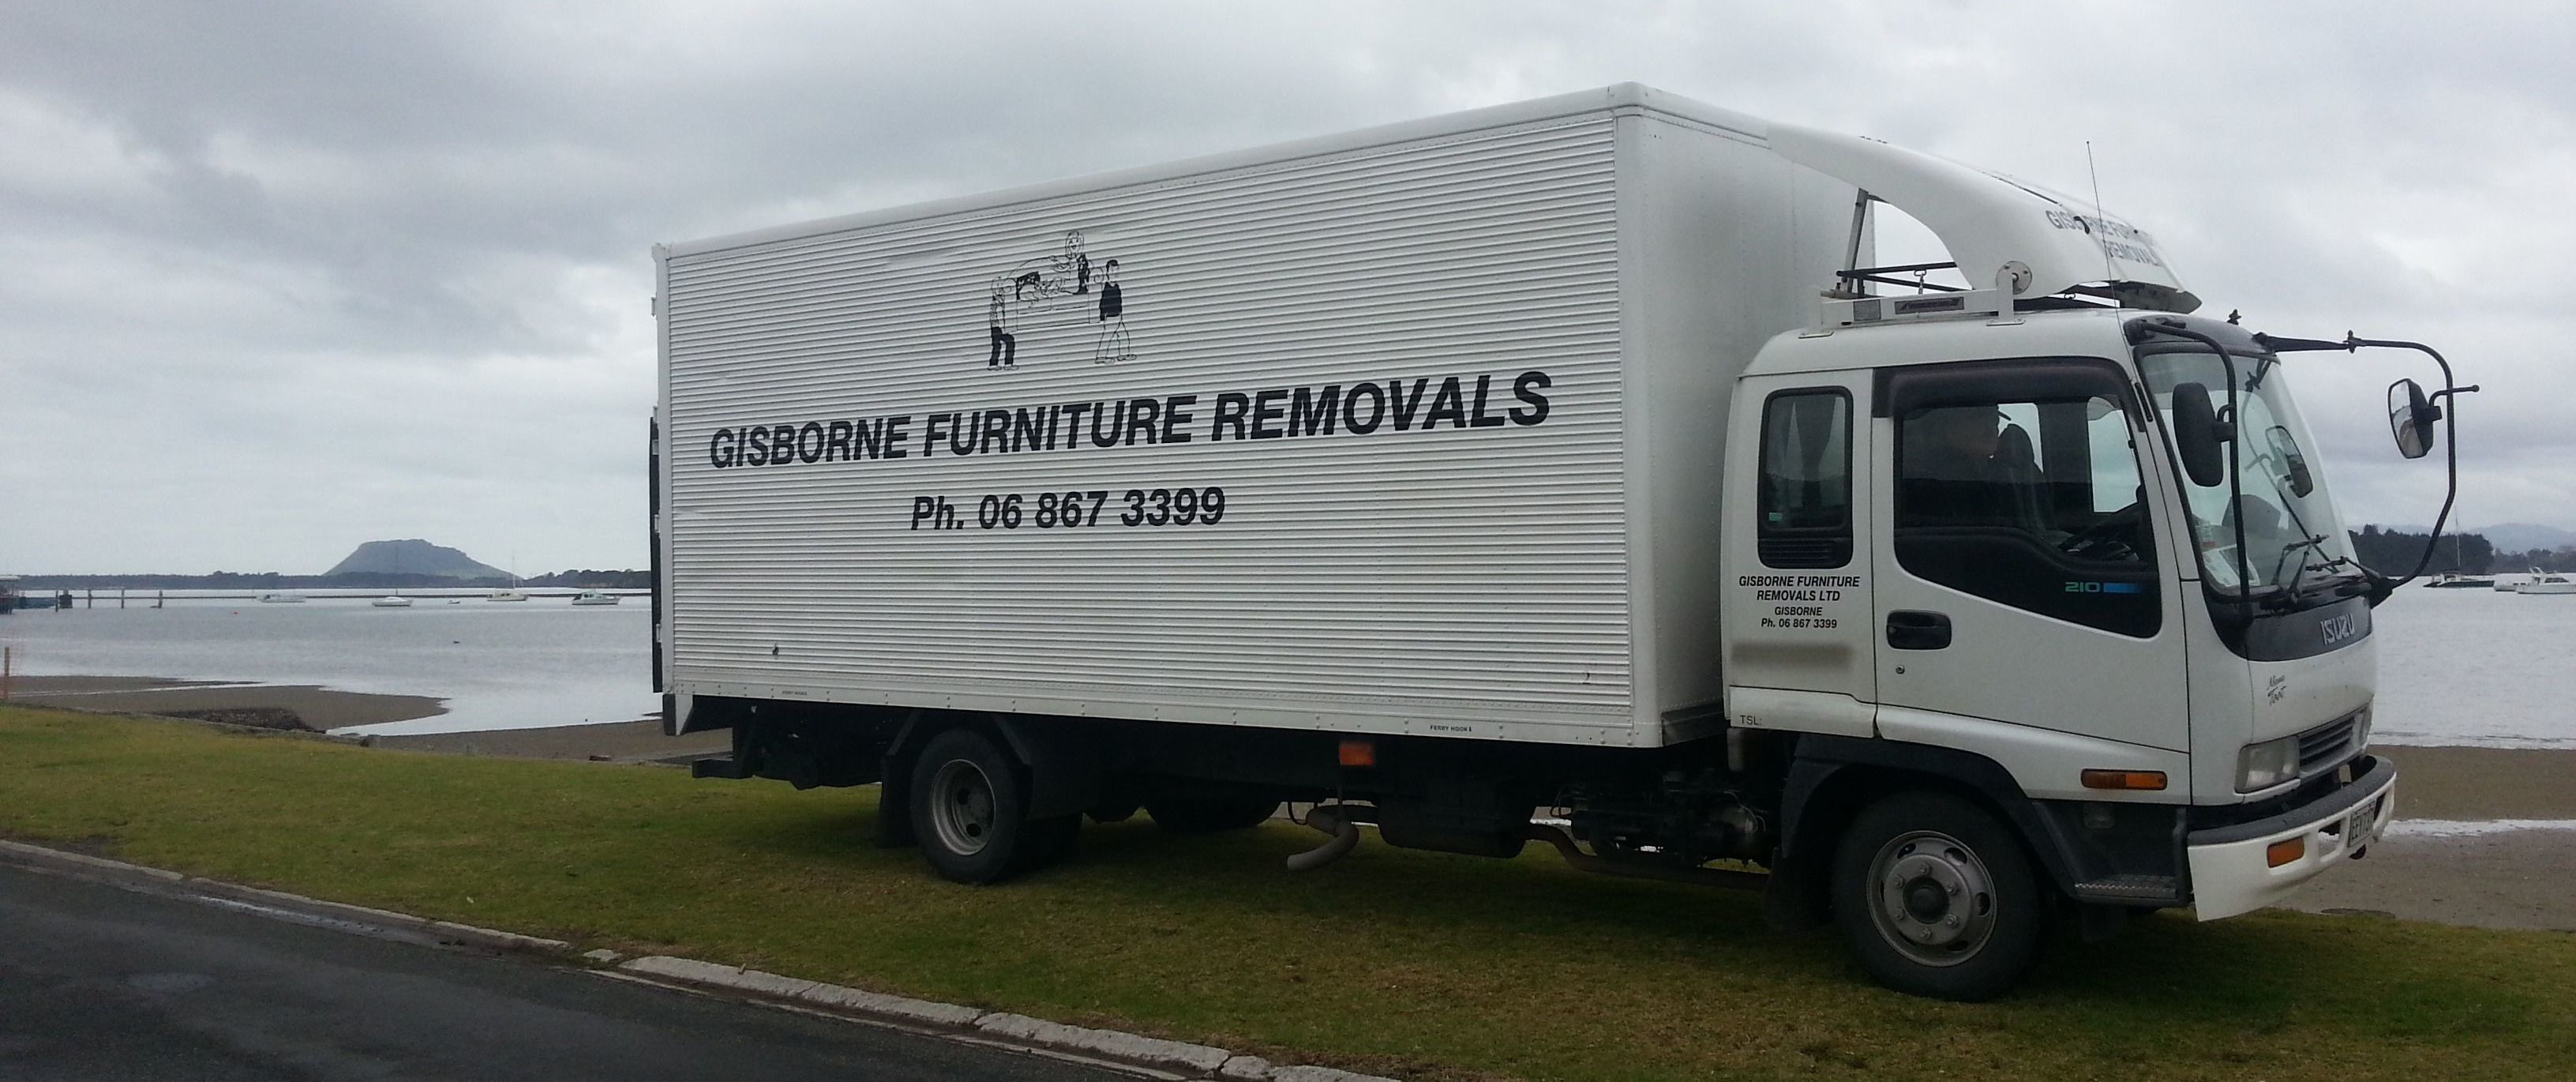 Gisborne Furniture Removals Removals New Zealand Custom Furniture Removals Exterior